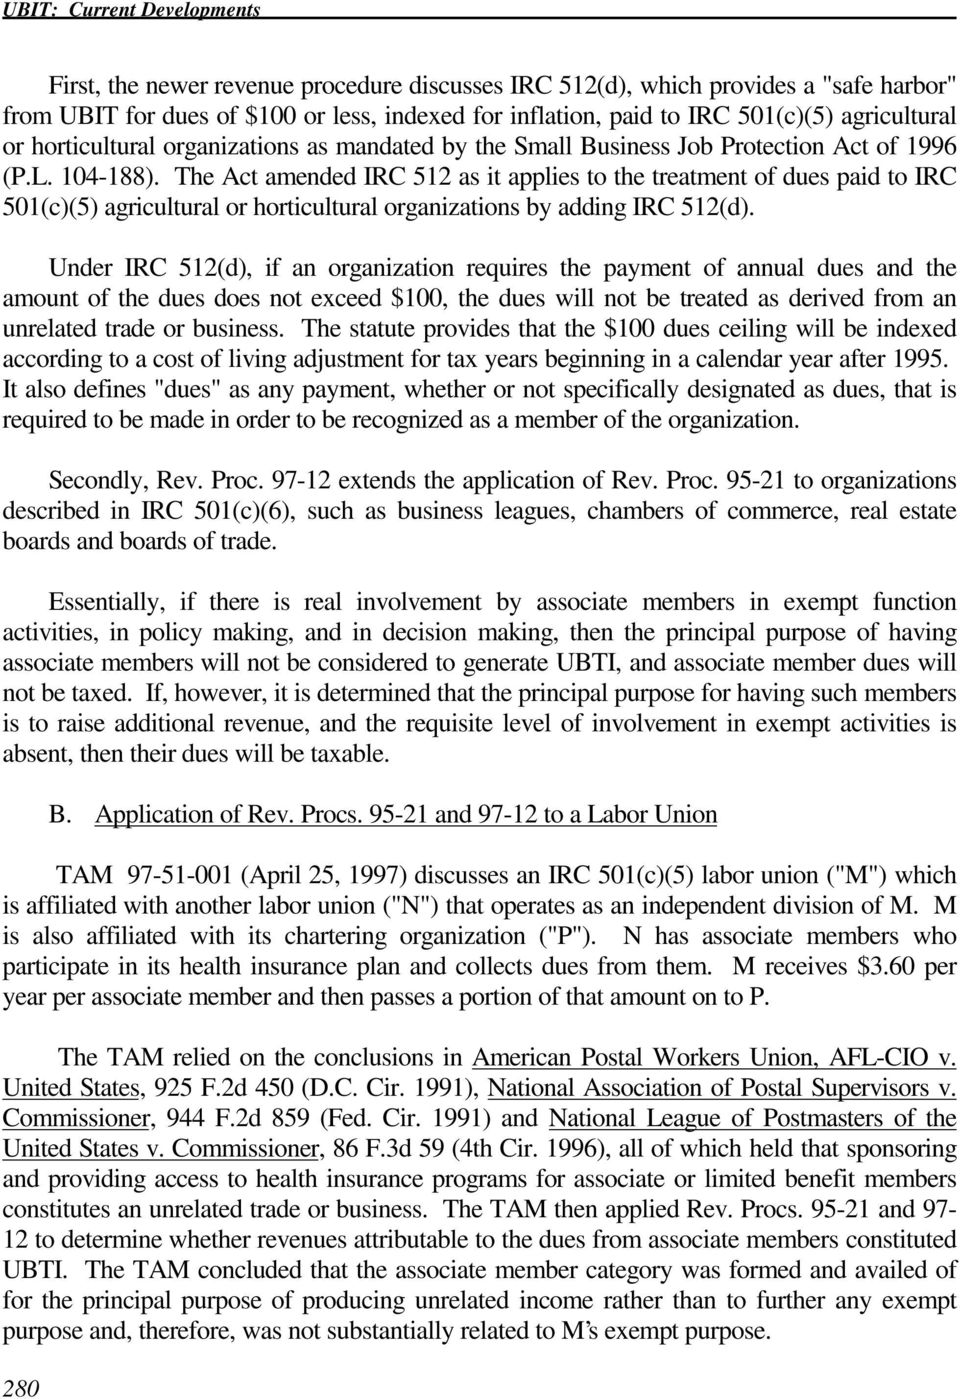 The Act amended IRC 512 as it applies to the treatment of dues paid to IRC 501(c)(5) agricultural or horticultural organizations by adding IRC 512(d).